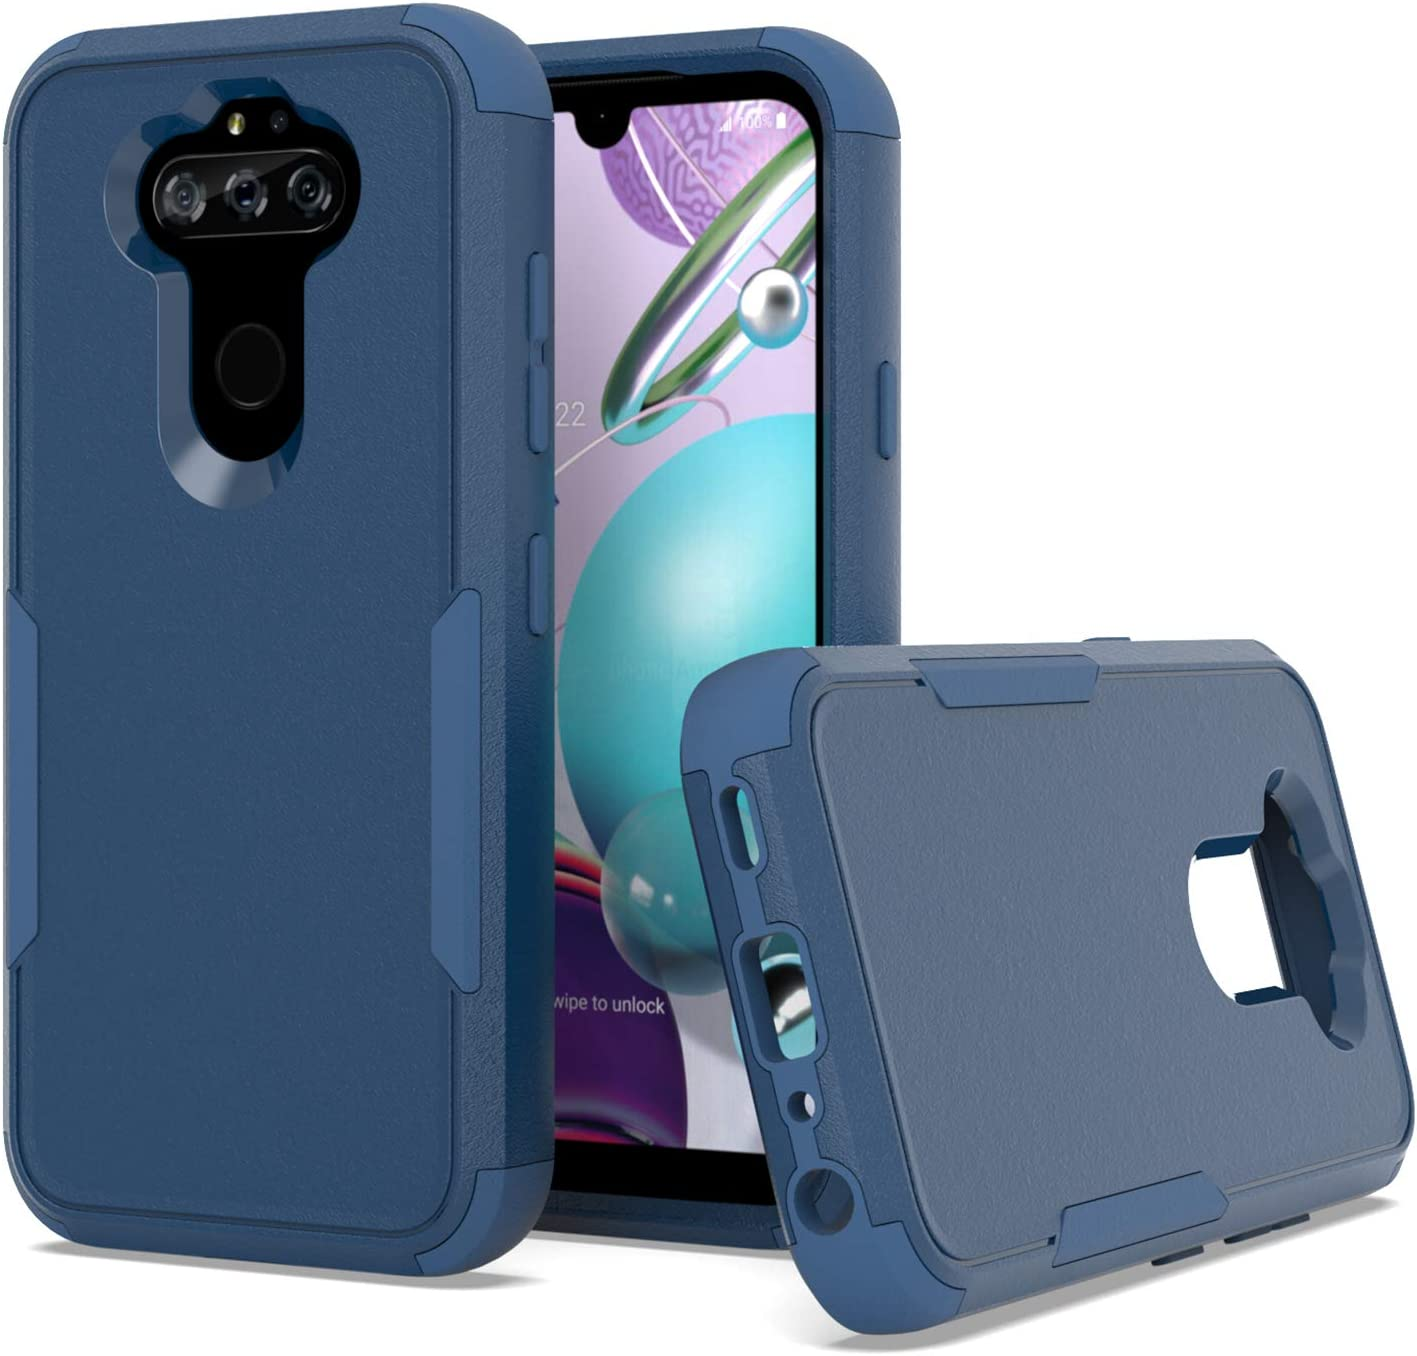 KWEICASE 2 in 1 Cell Phone 5 Max New item 67% OFF for LG Case Aristo K31